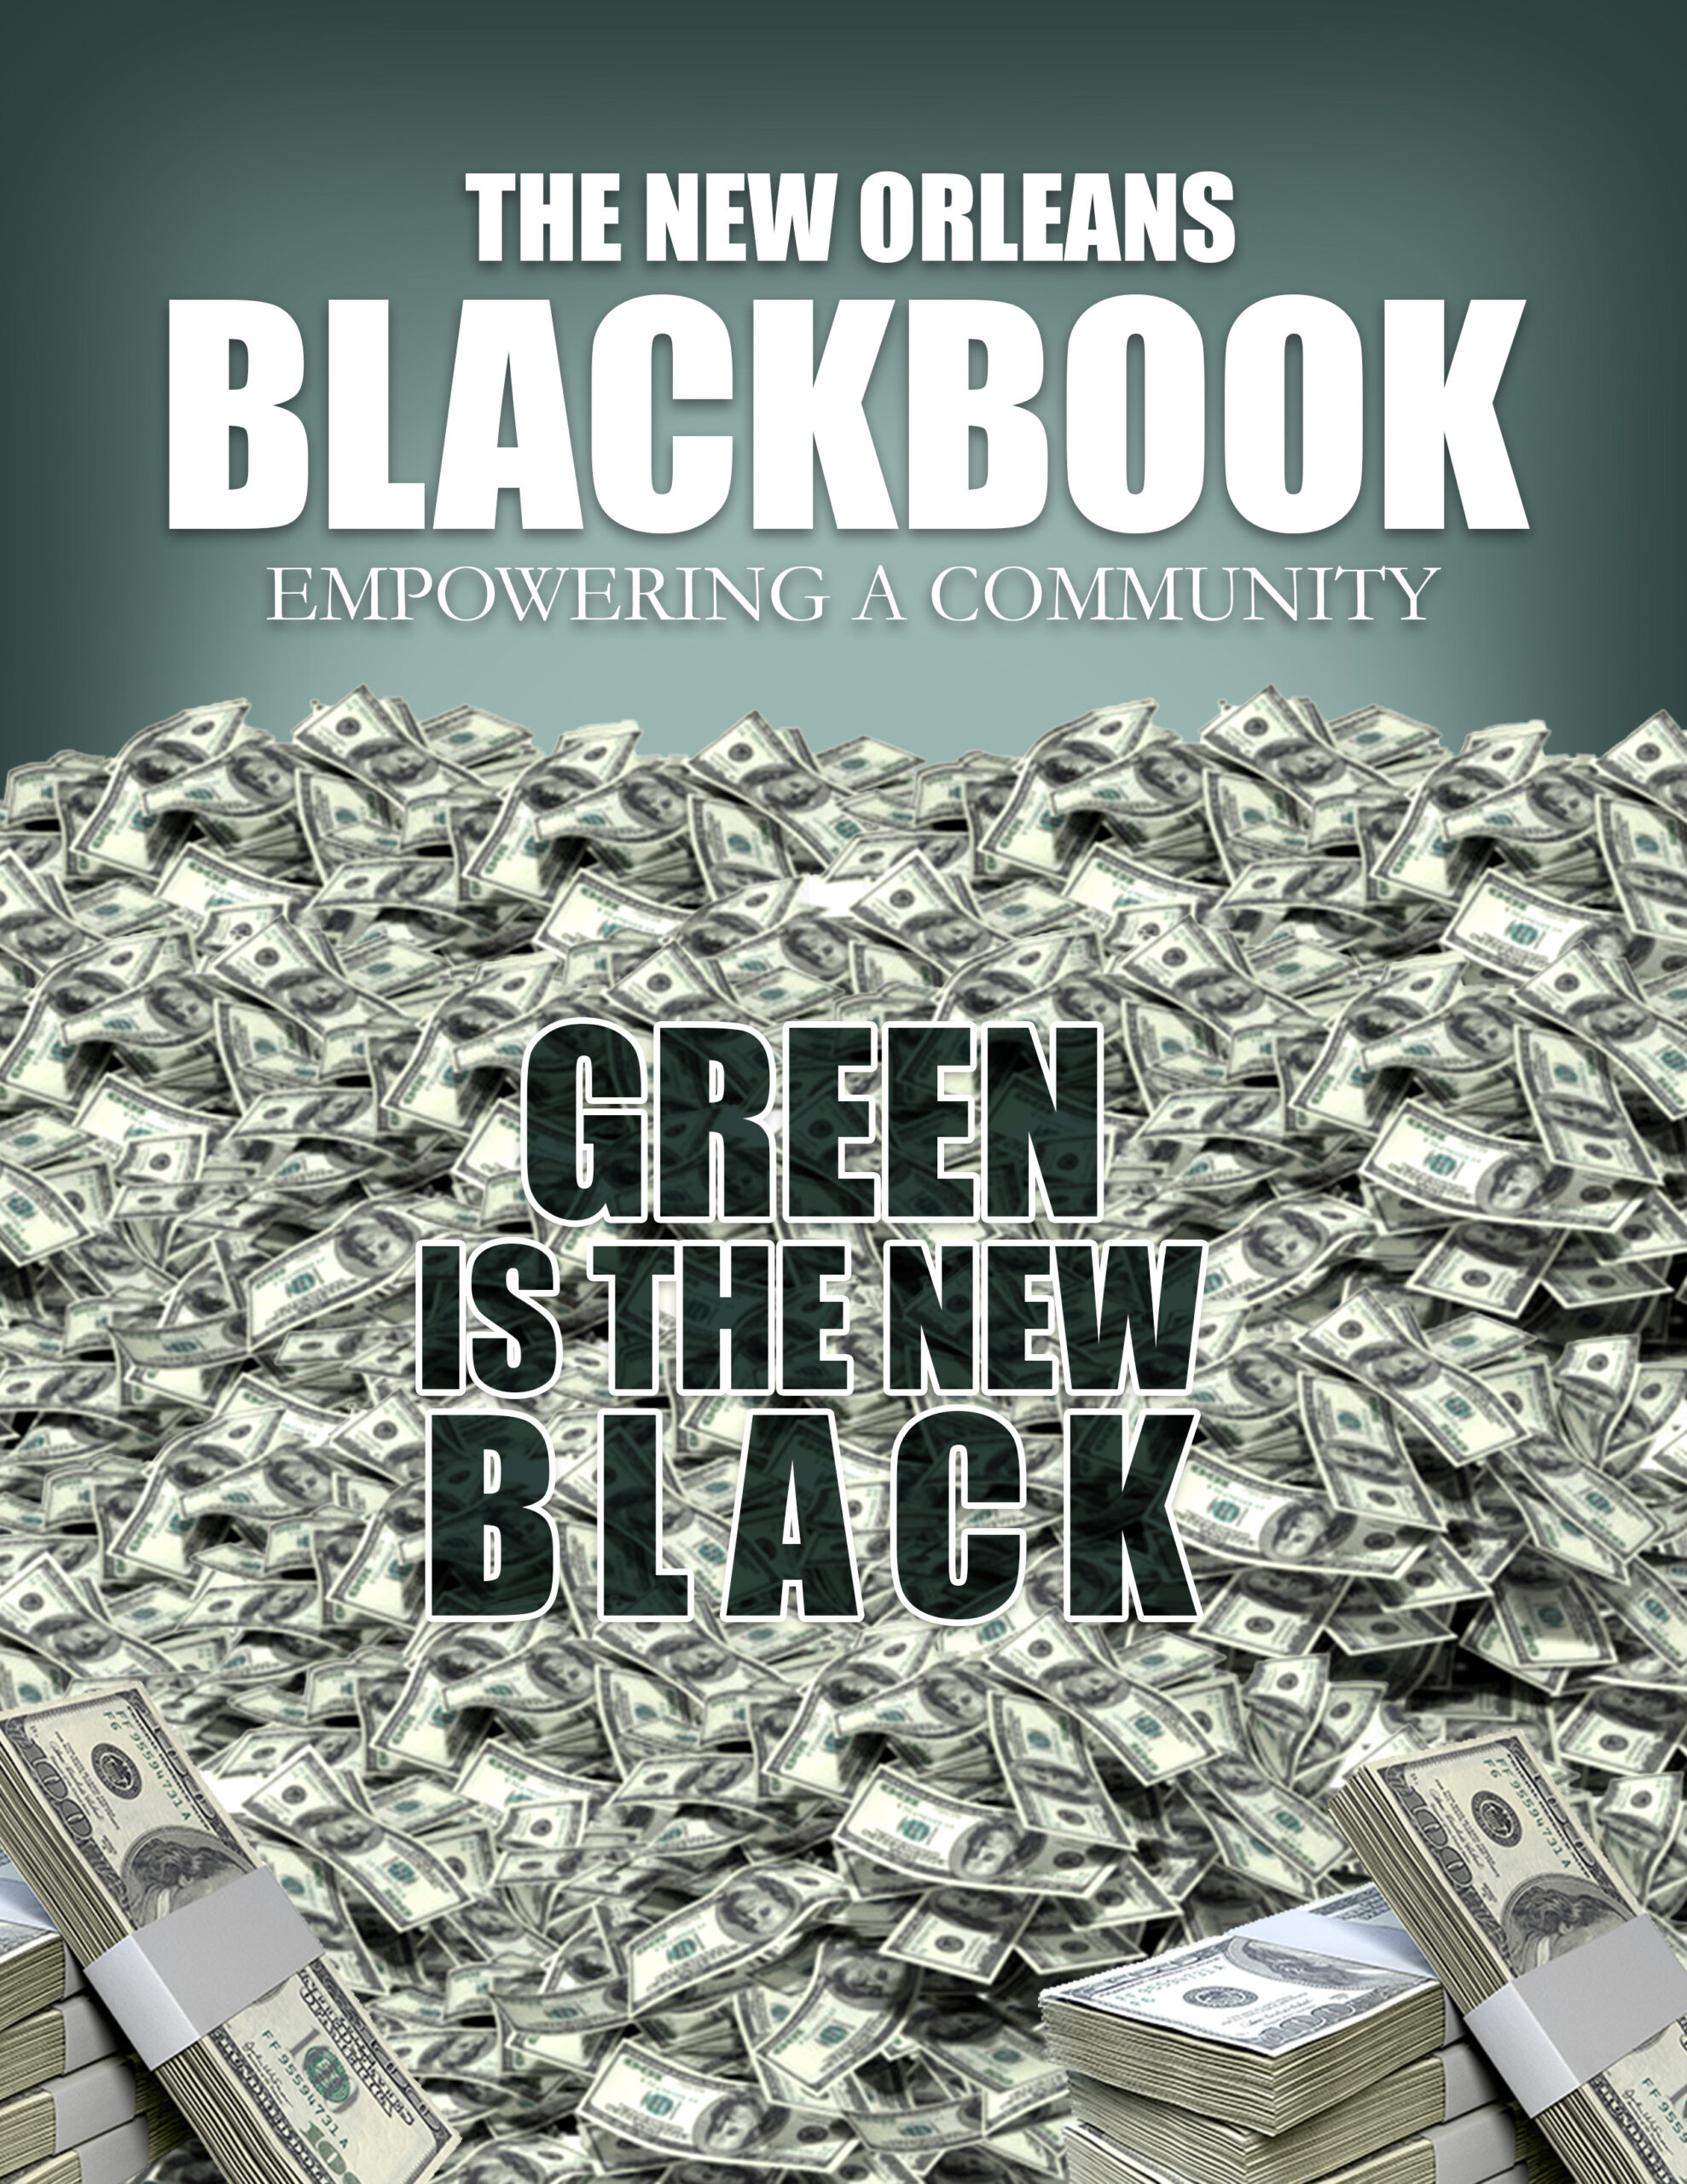 Premium Listing in The New Orleans BlackBook